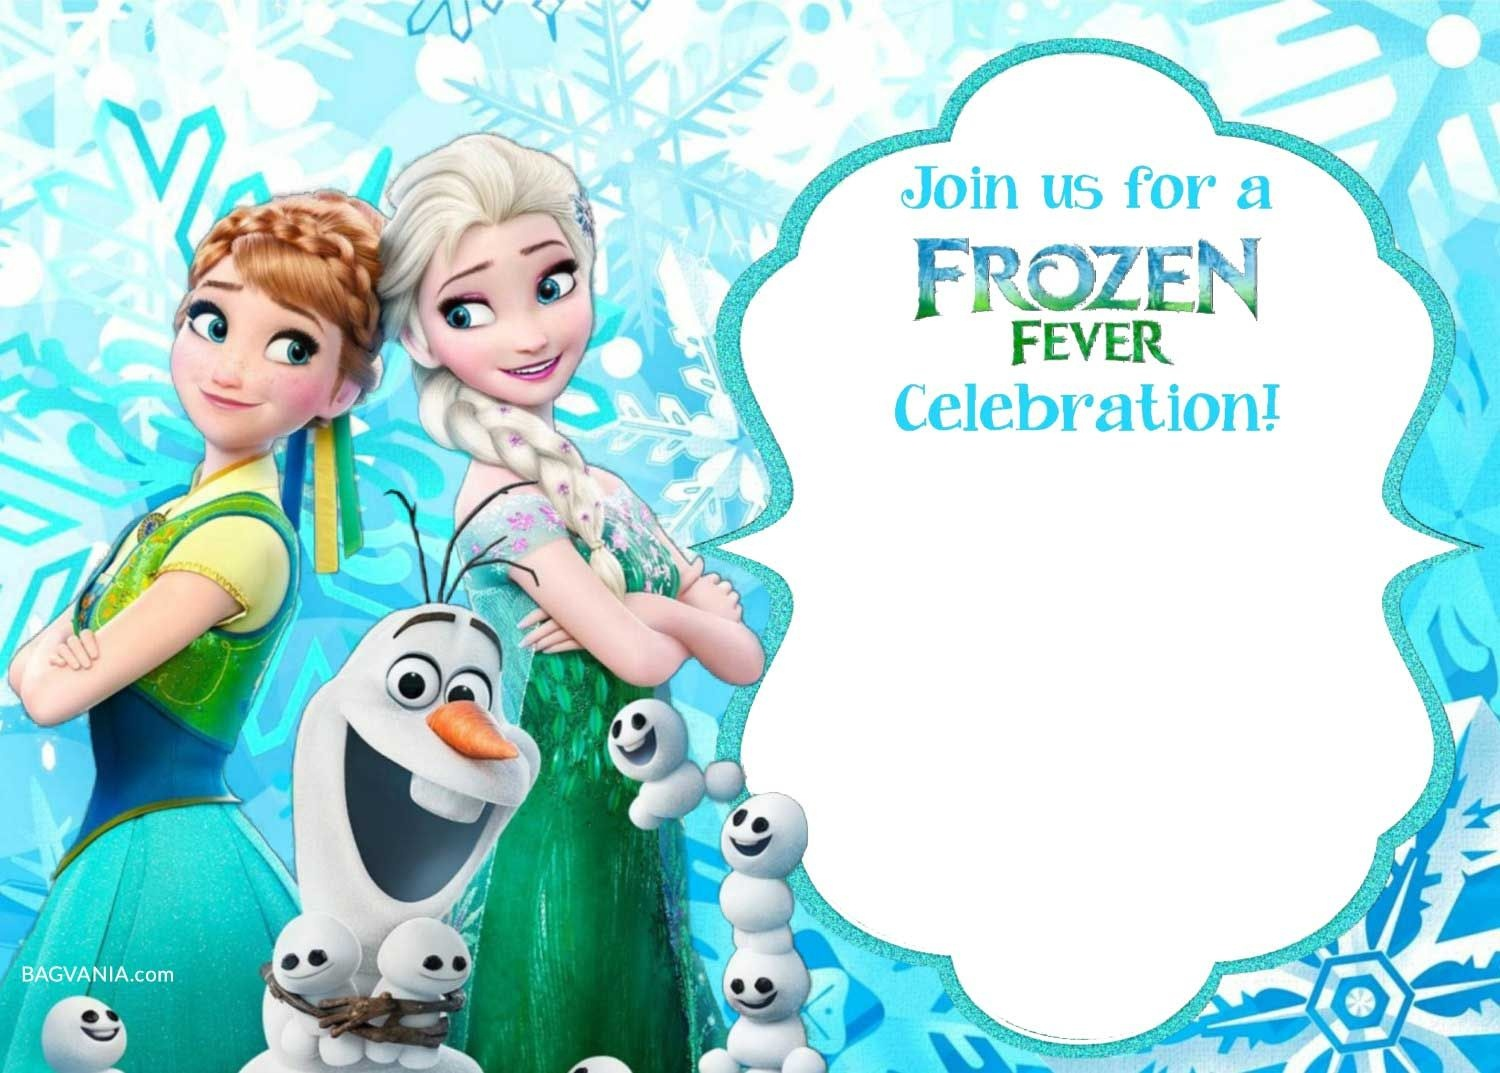 Free Printable Frozen Invitation Templates | Bagvania Free Printable - Free Printable Frozen Birthday Invitations